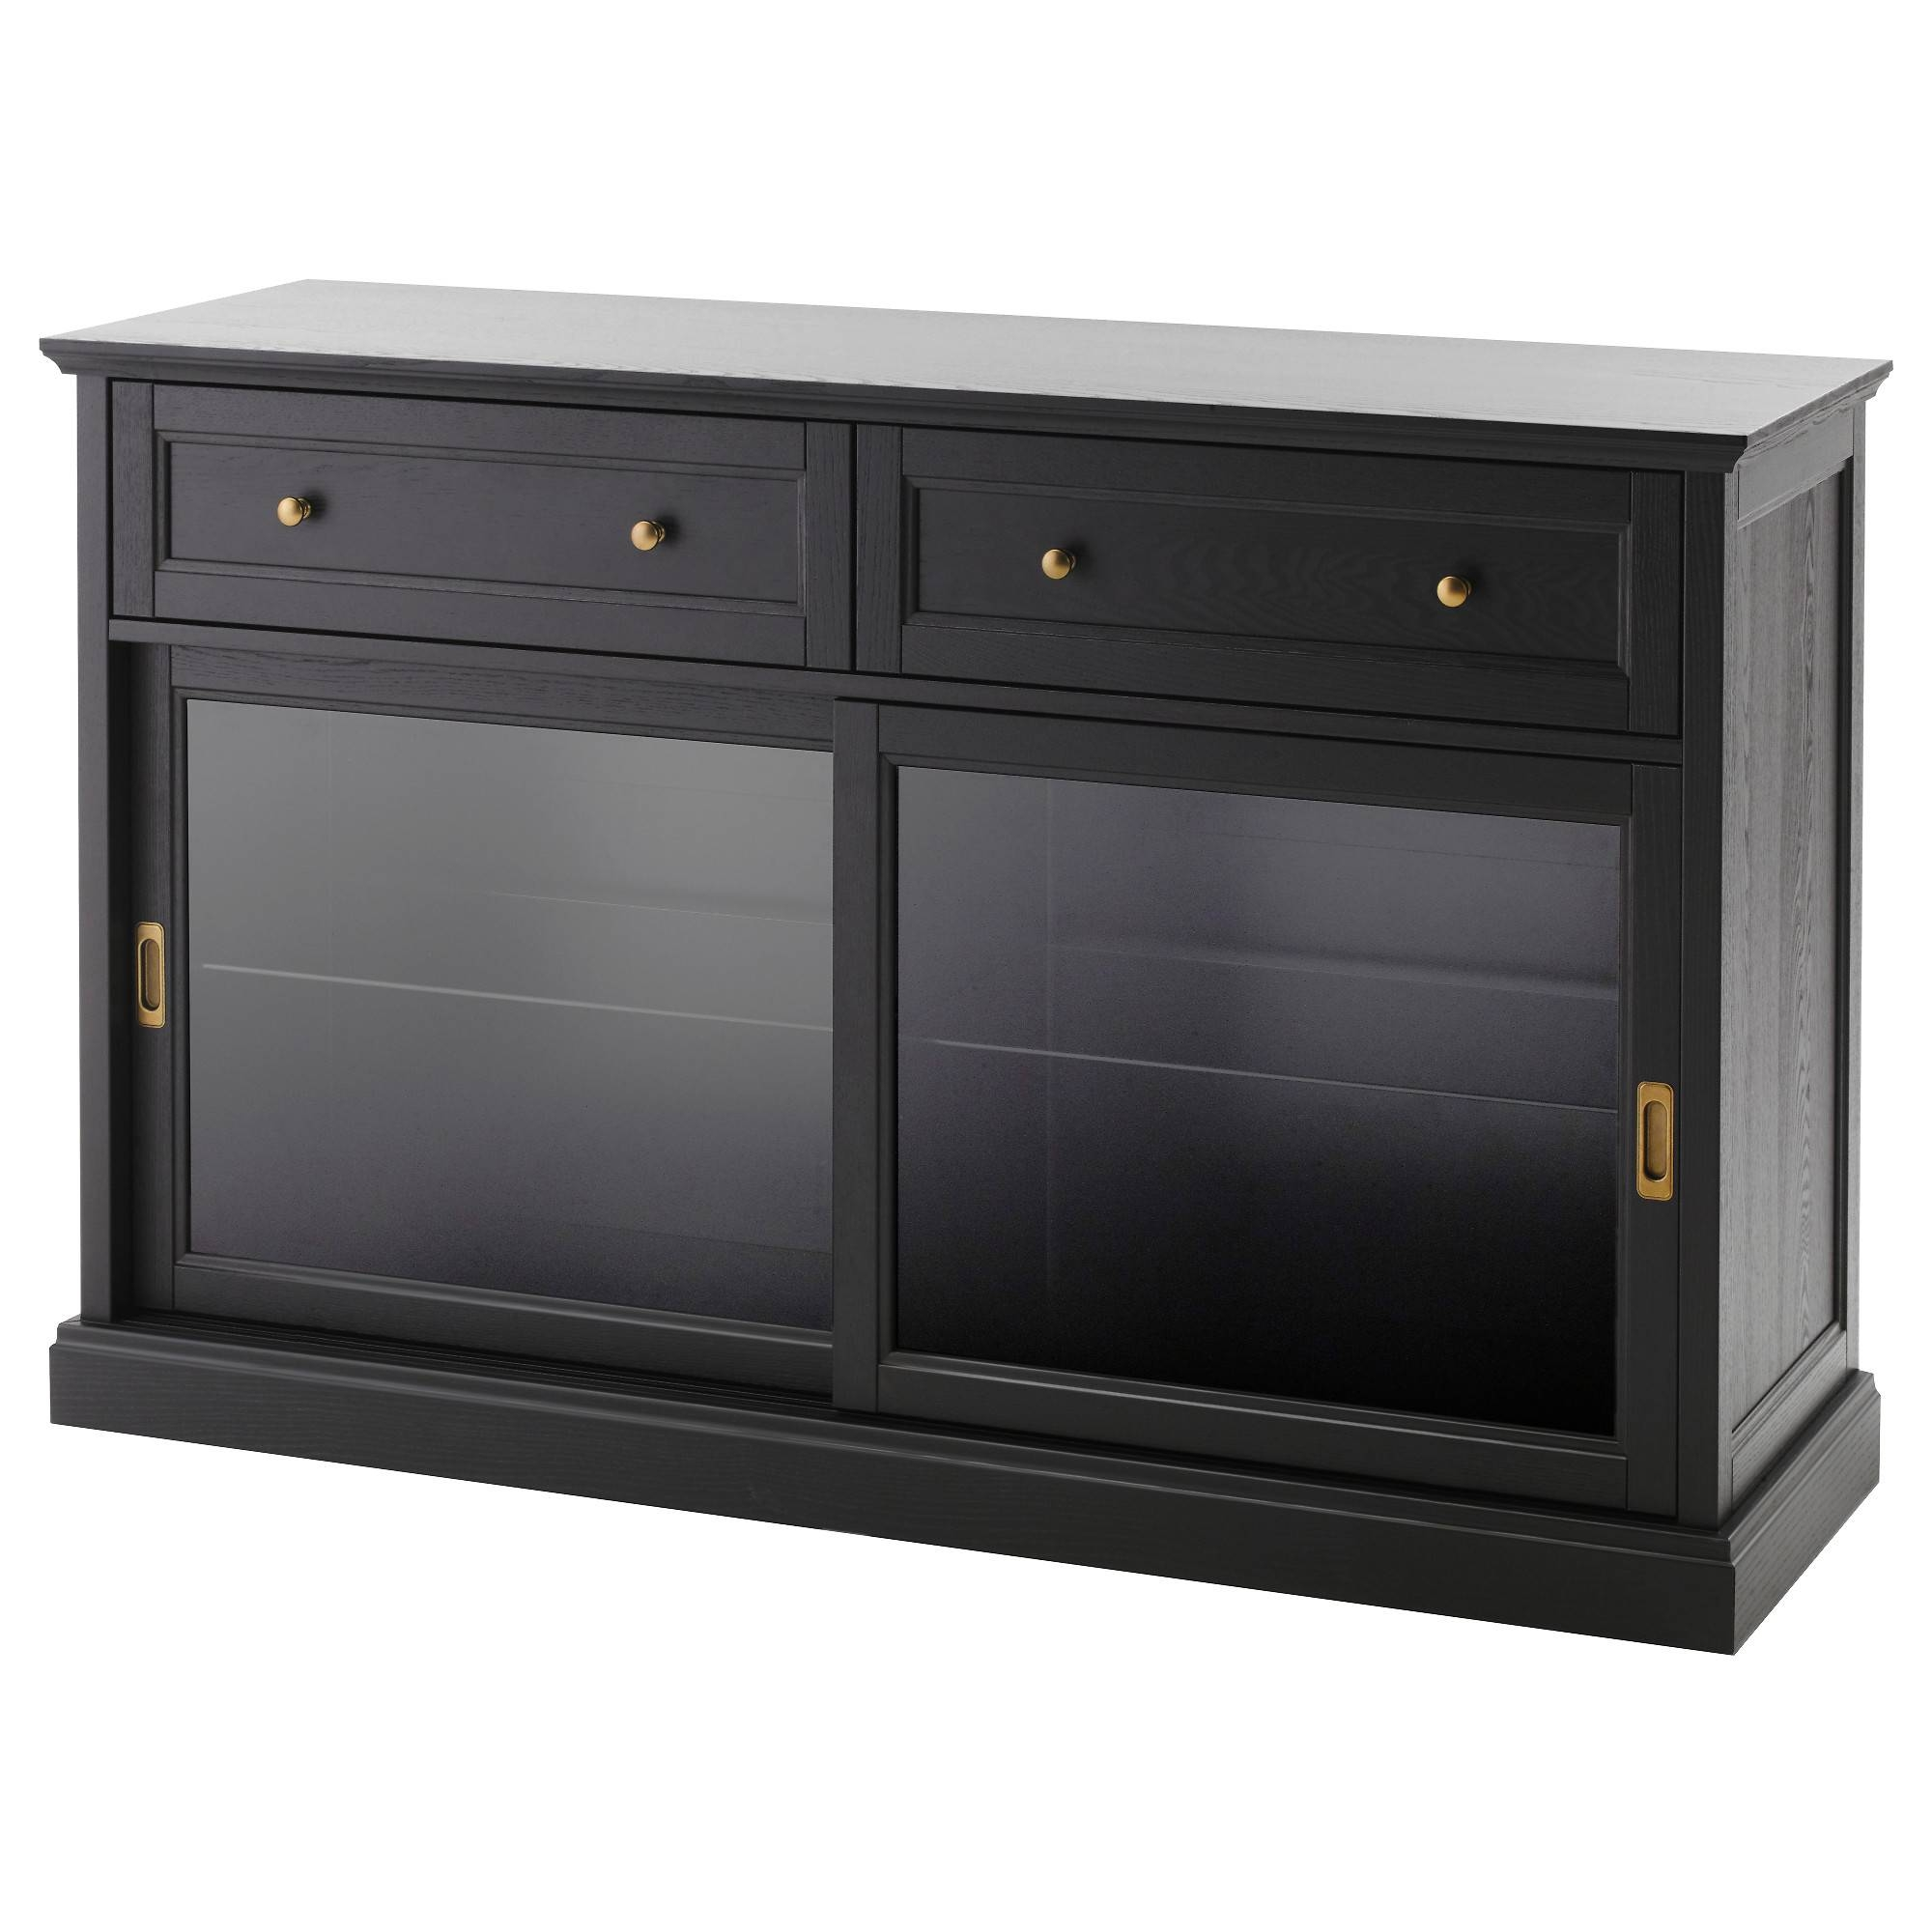 Buffet Tables & Sideboards - Ikea with regard to Black High Gloss Sideboards (Image 5 of 30)